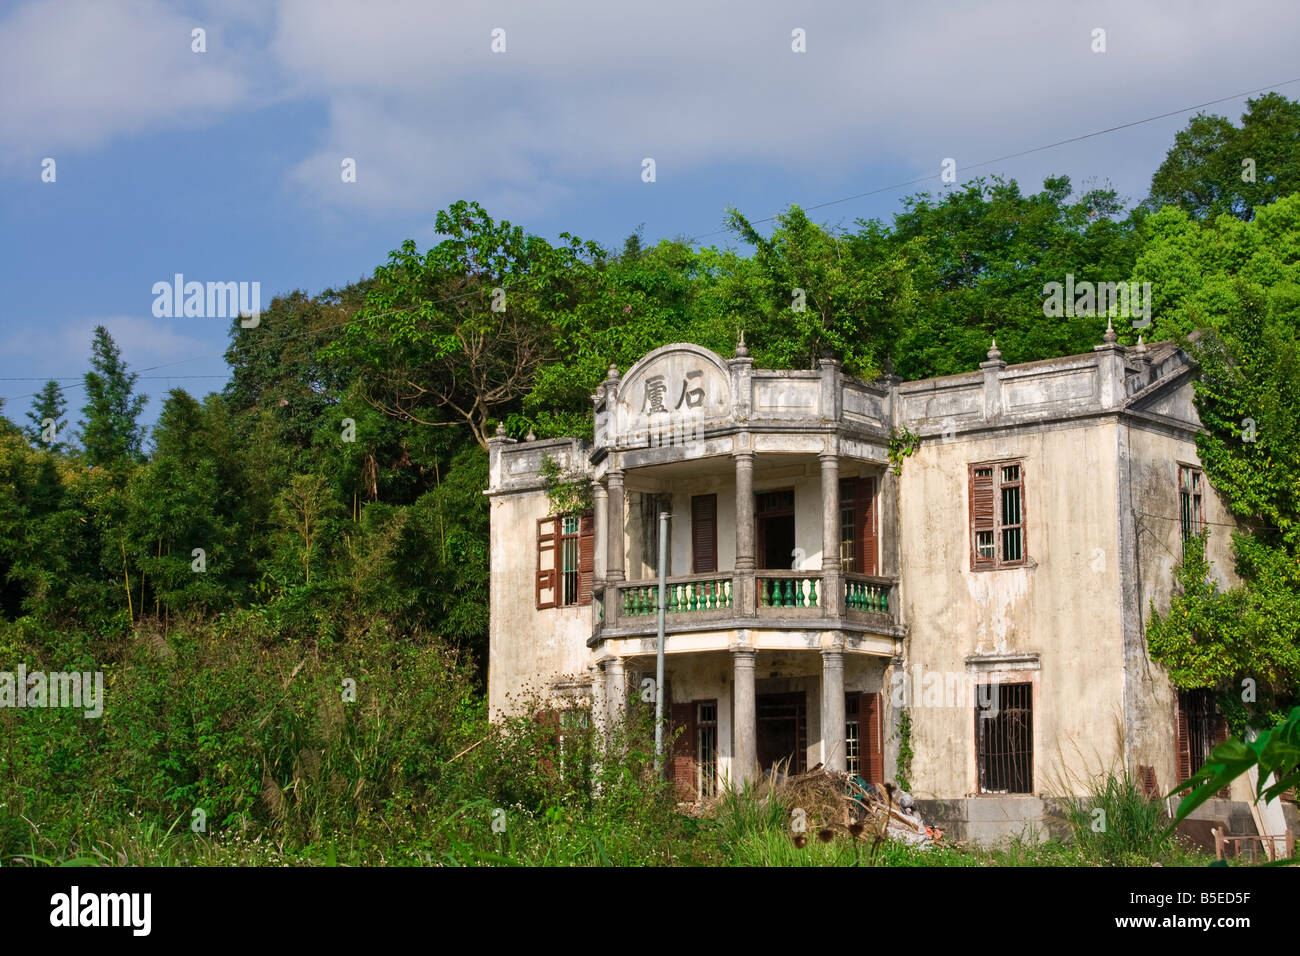 Newly Built Georgian Inspired Greenwich Mansion likewise 201702140029 as well 2 moreover New Jersey also Culture. on colonial homes with stone